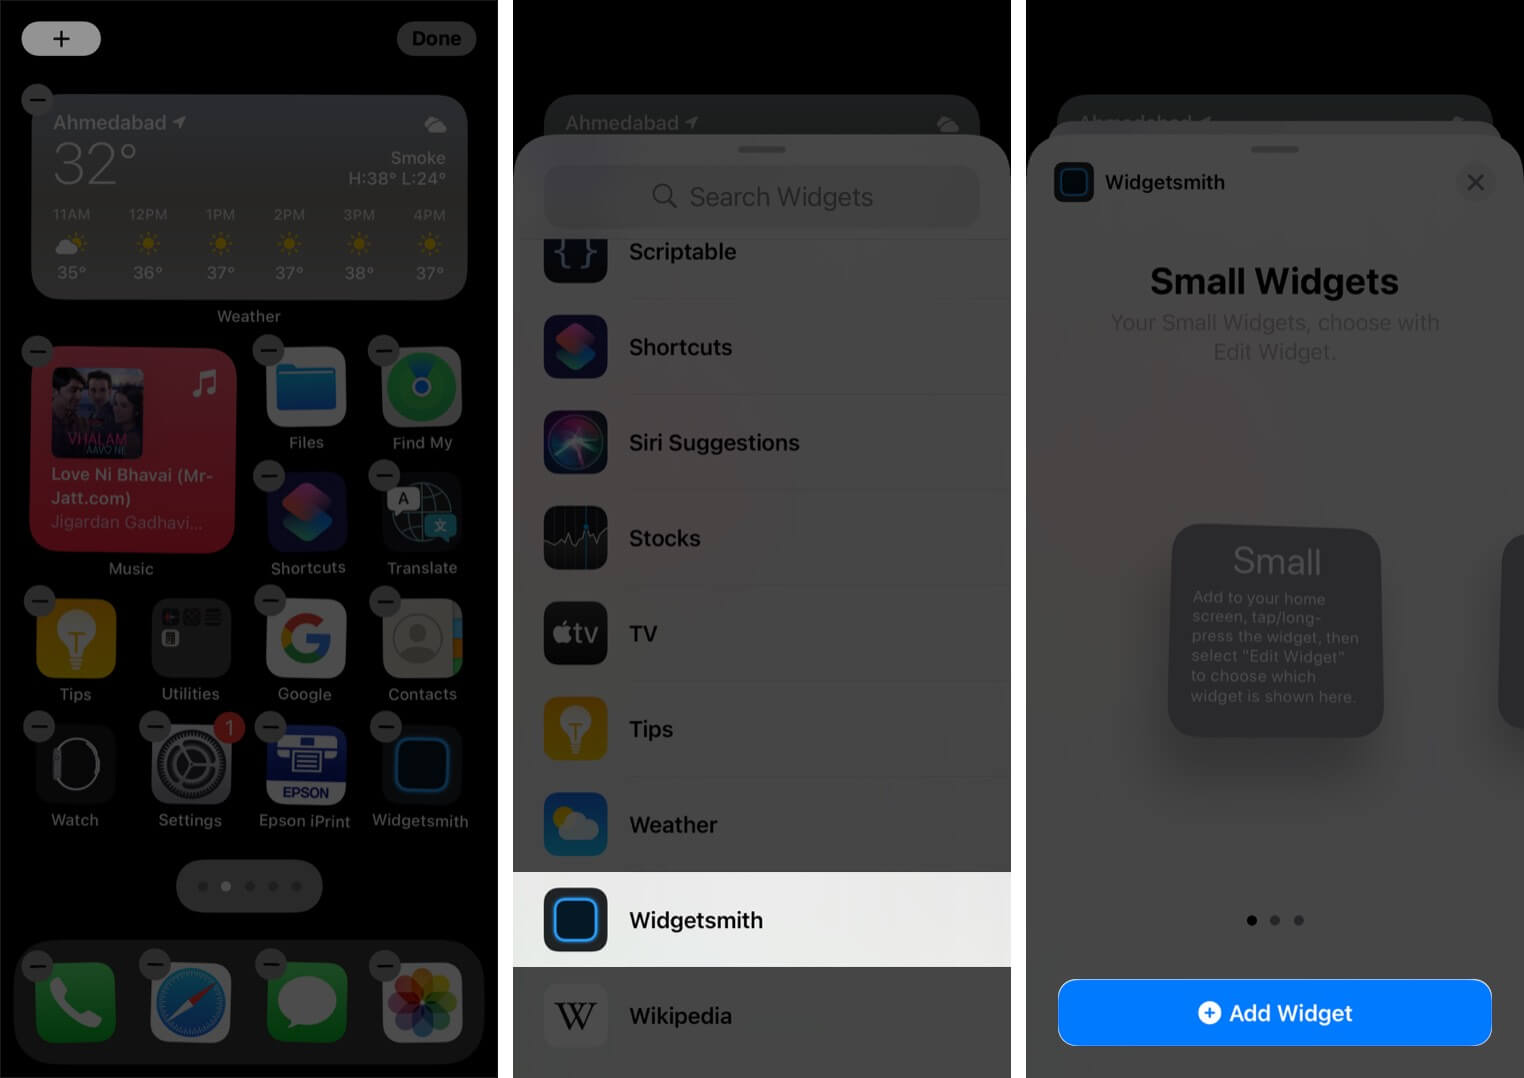 Tap on Plus in iPhone Home Screen Select Widgetsmith and then Tap on Add Widget